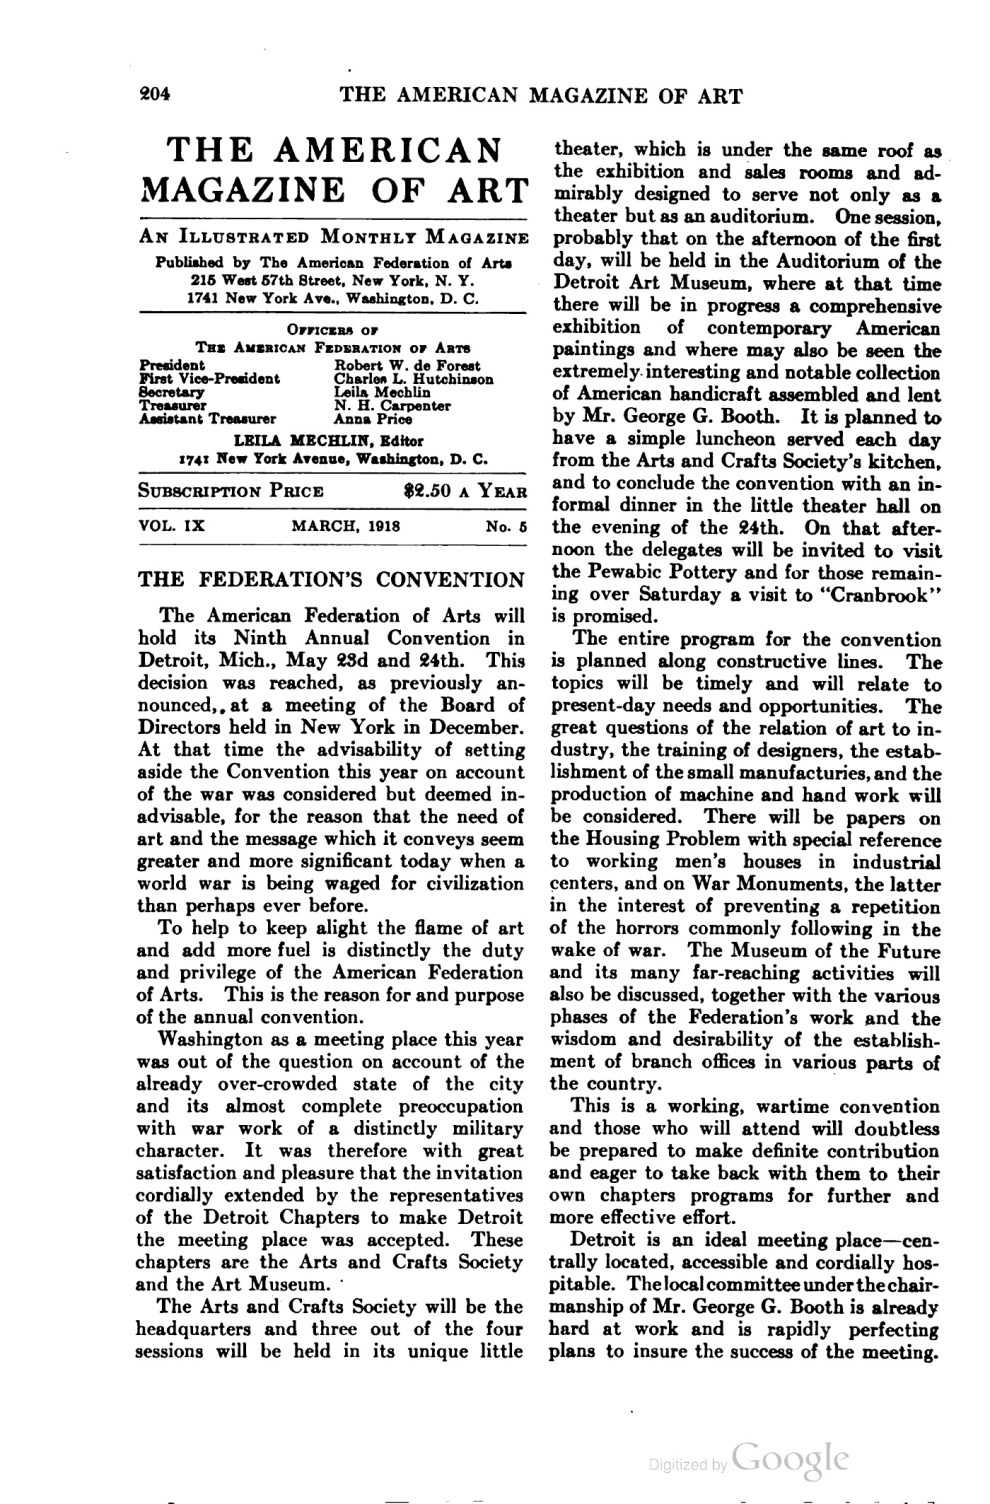 """The American Magazine of Art [Art of progress], The American Federation of the Arts, New York, NY, """"Notes : Works by alumni of Chicago Art Institute"""", volume 9, number 5, March, 1918, page 206-207, not illustrated."""